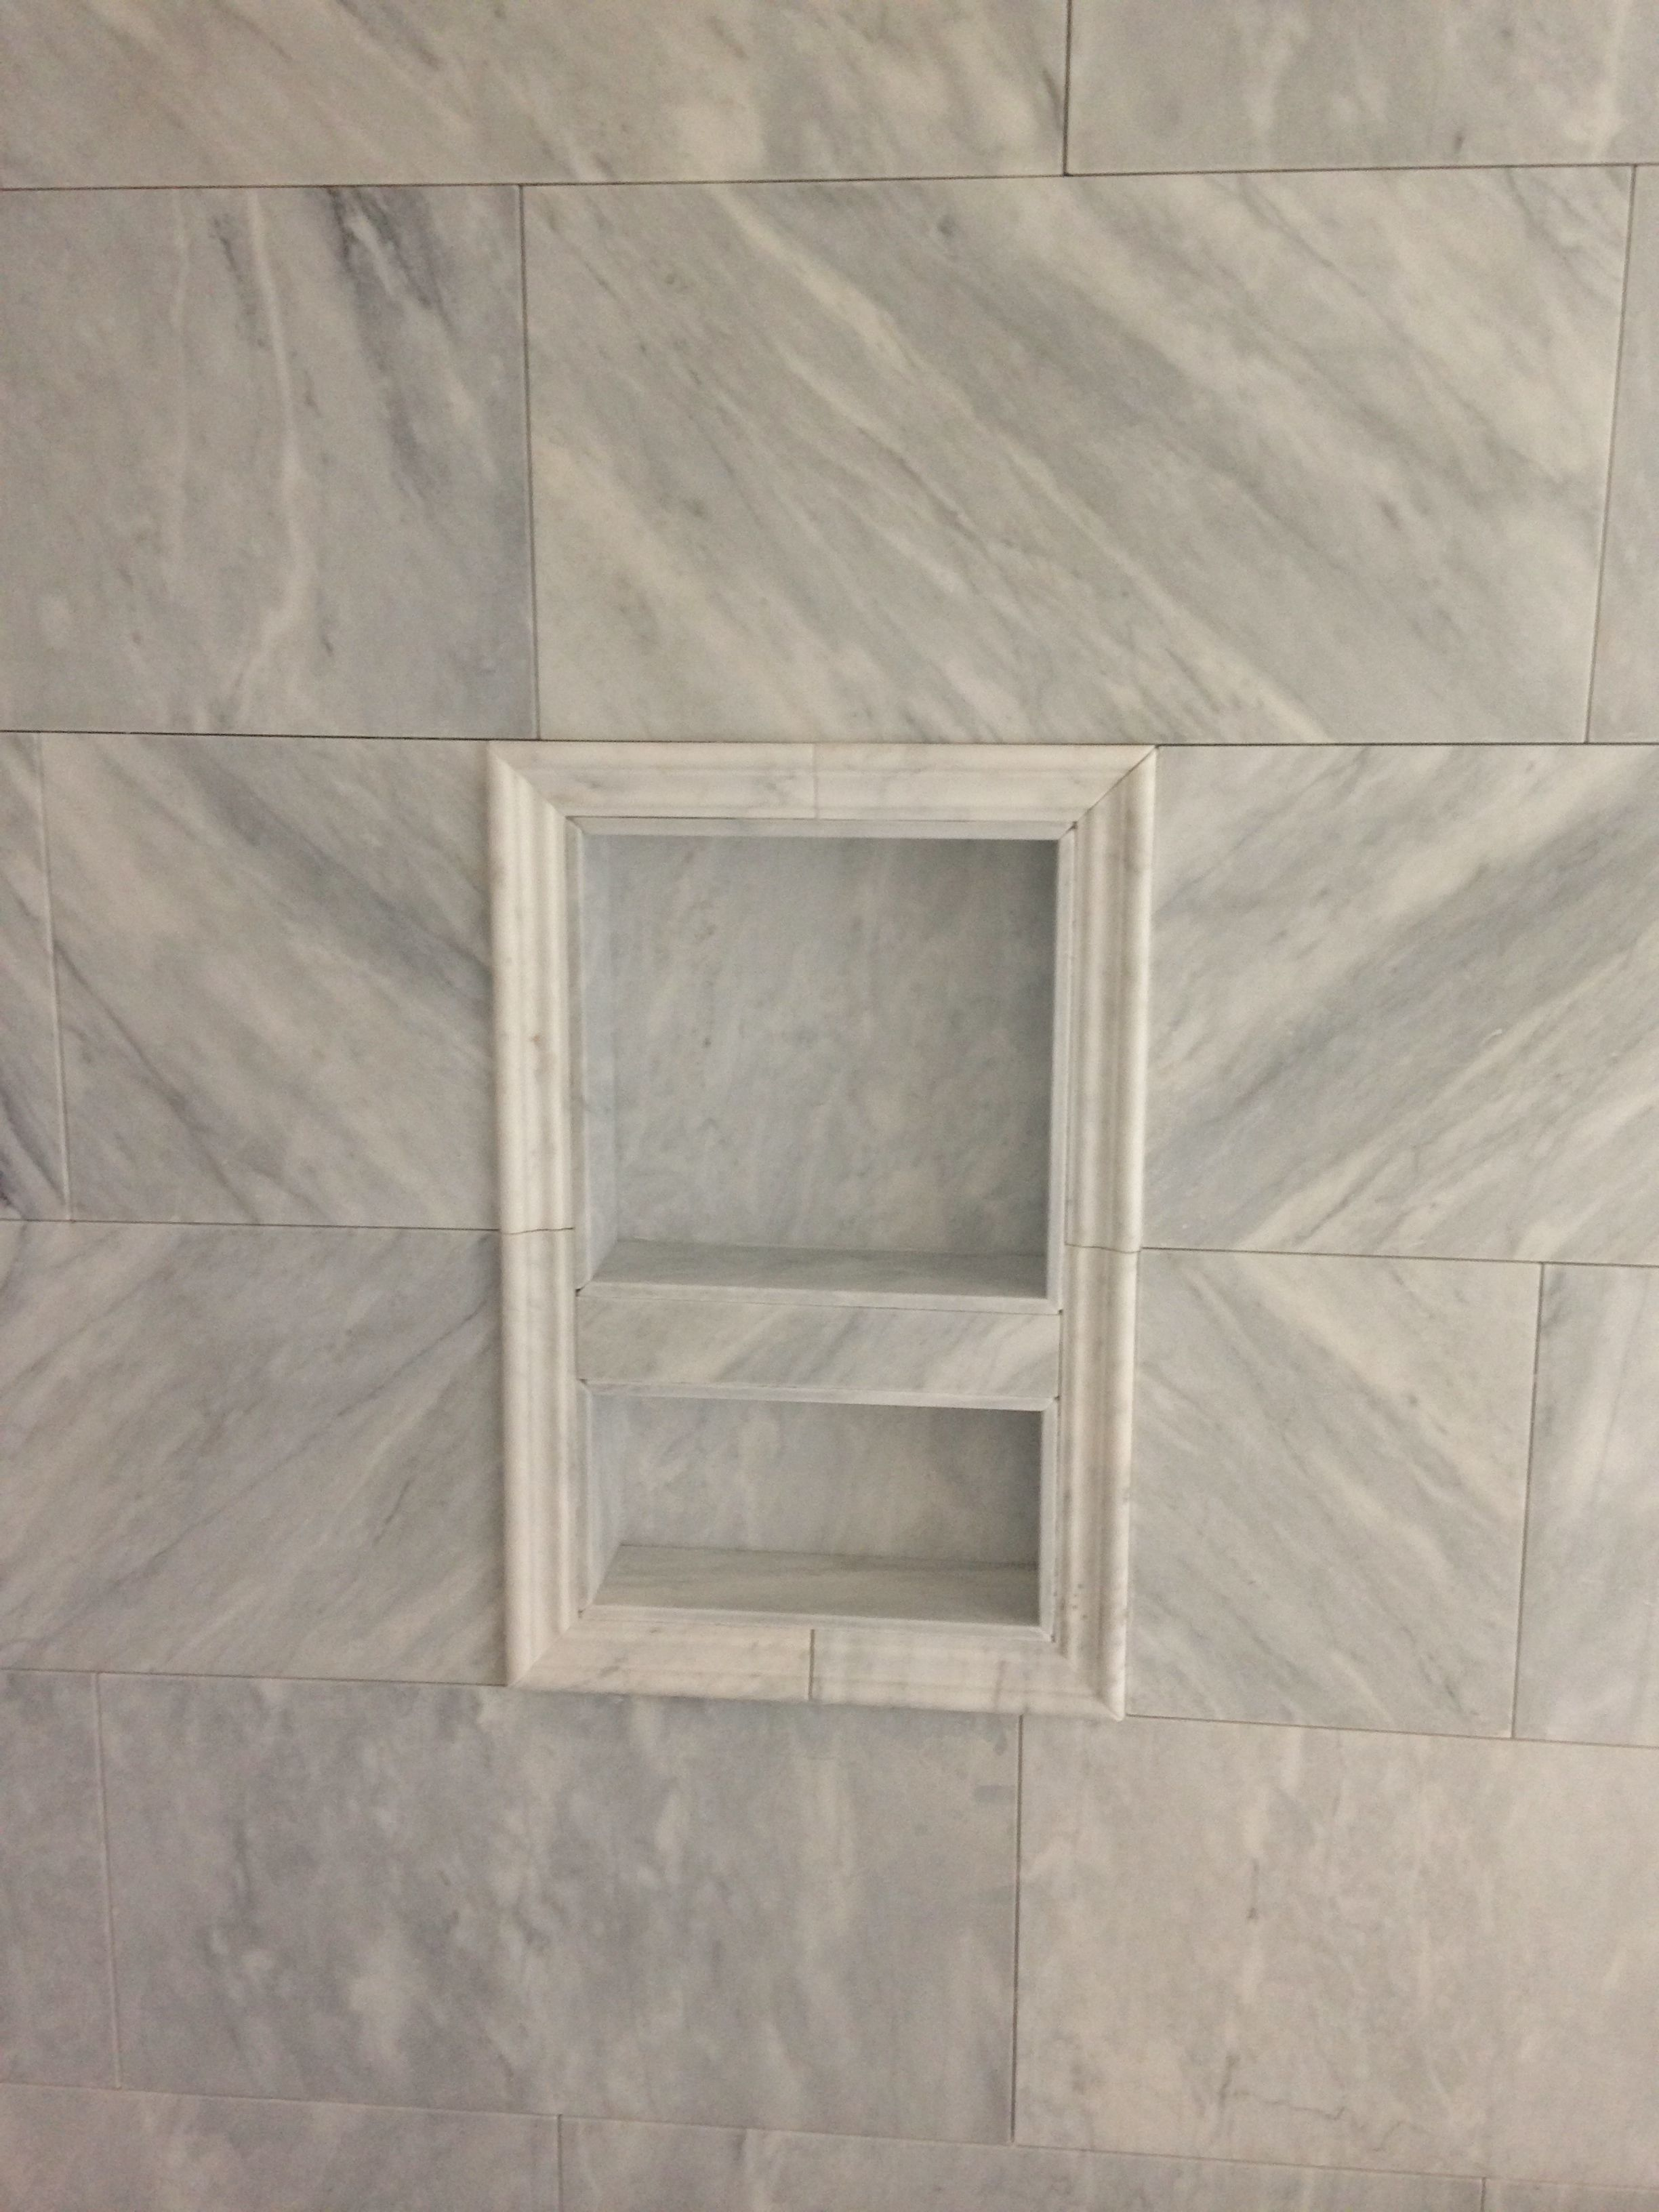 Carrara Marble At Master Shower Walls With Niche Framed In Carrara Chairrail Tile Charleston Sc Shower Niche Coping Tiles Master Shower